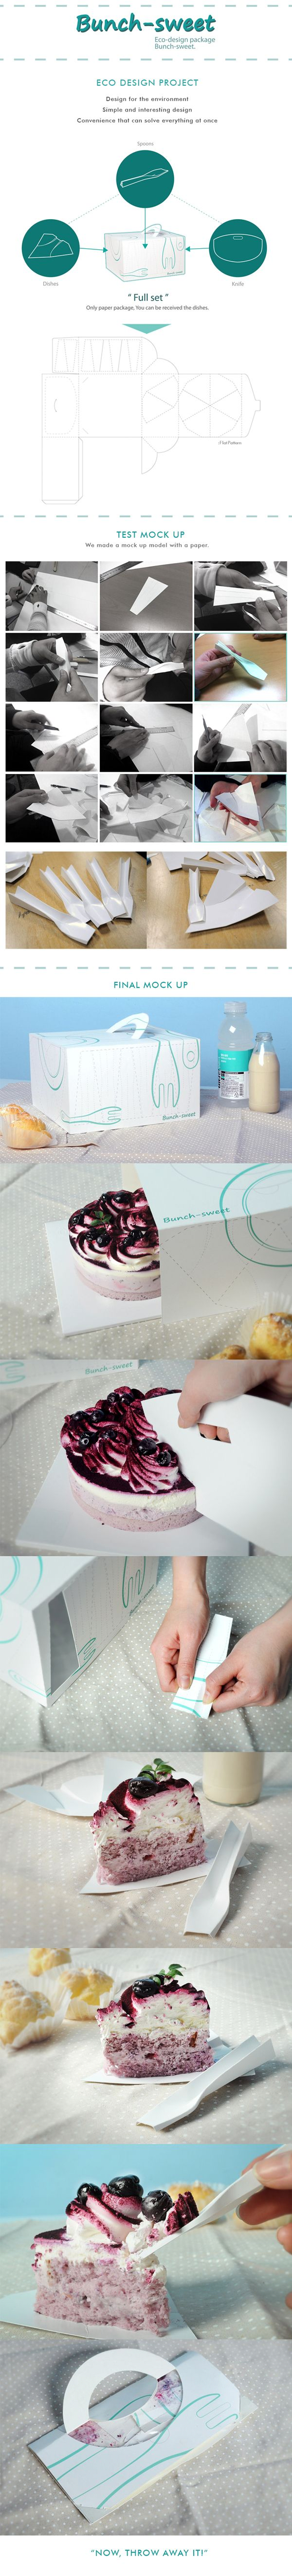 Bunch-Sweet, All In One Cake Package. by JK-shay Ryu, KyungNa Min, SeHwa Shin, via Behance